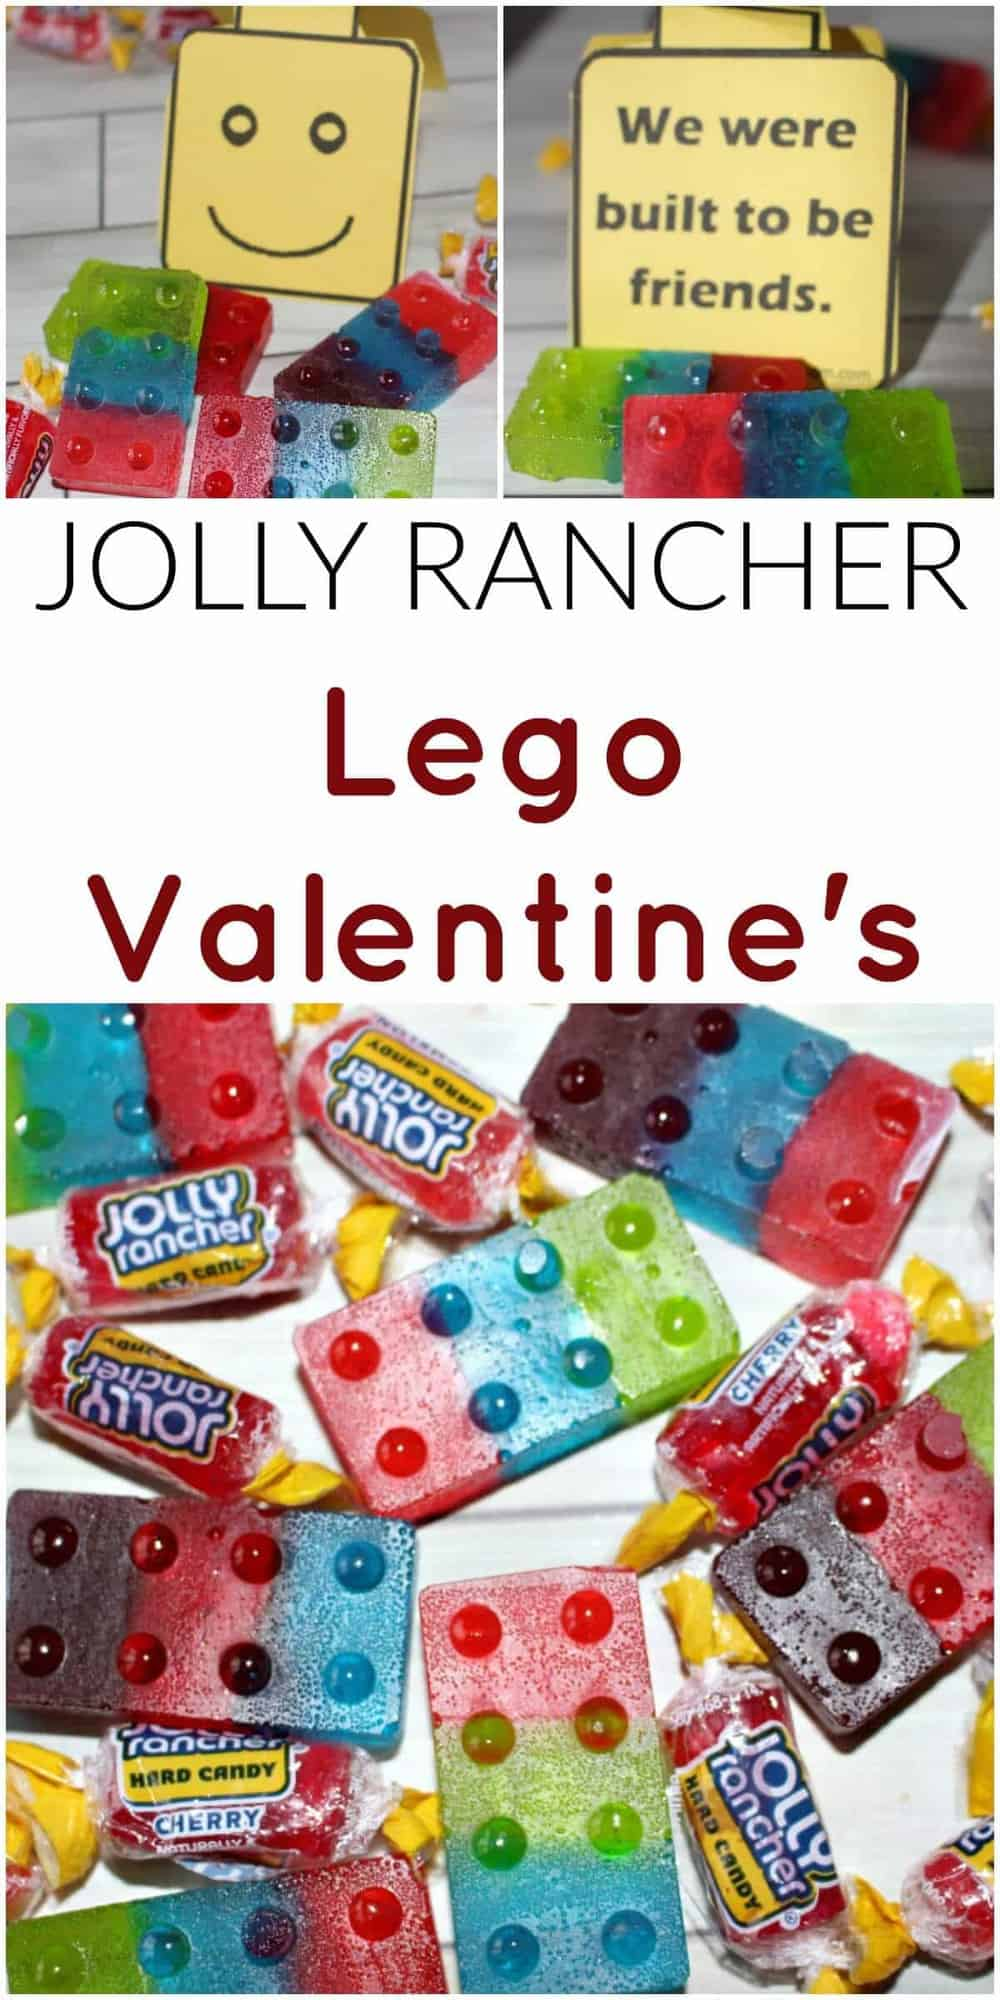 Jolly Rancher Lego Valentines form Princess Pinky Girl